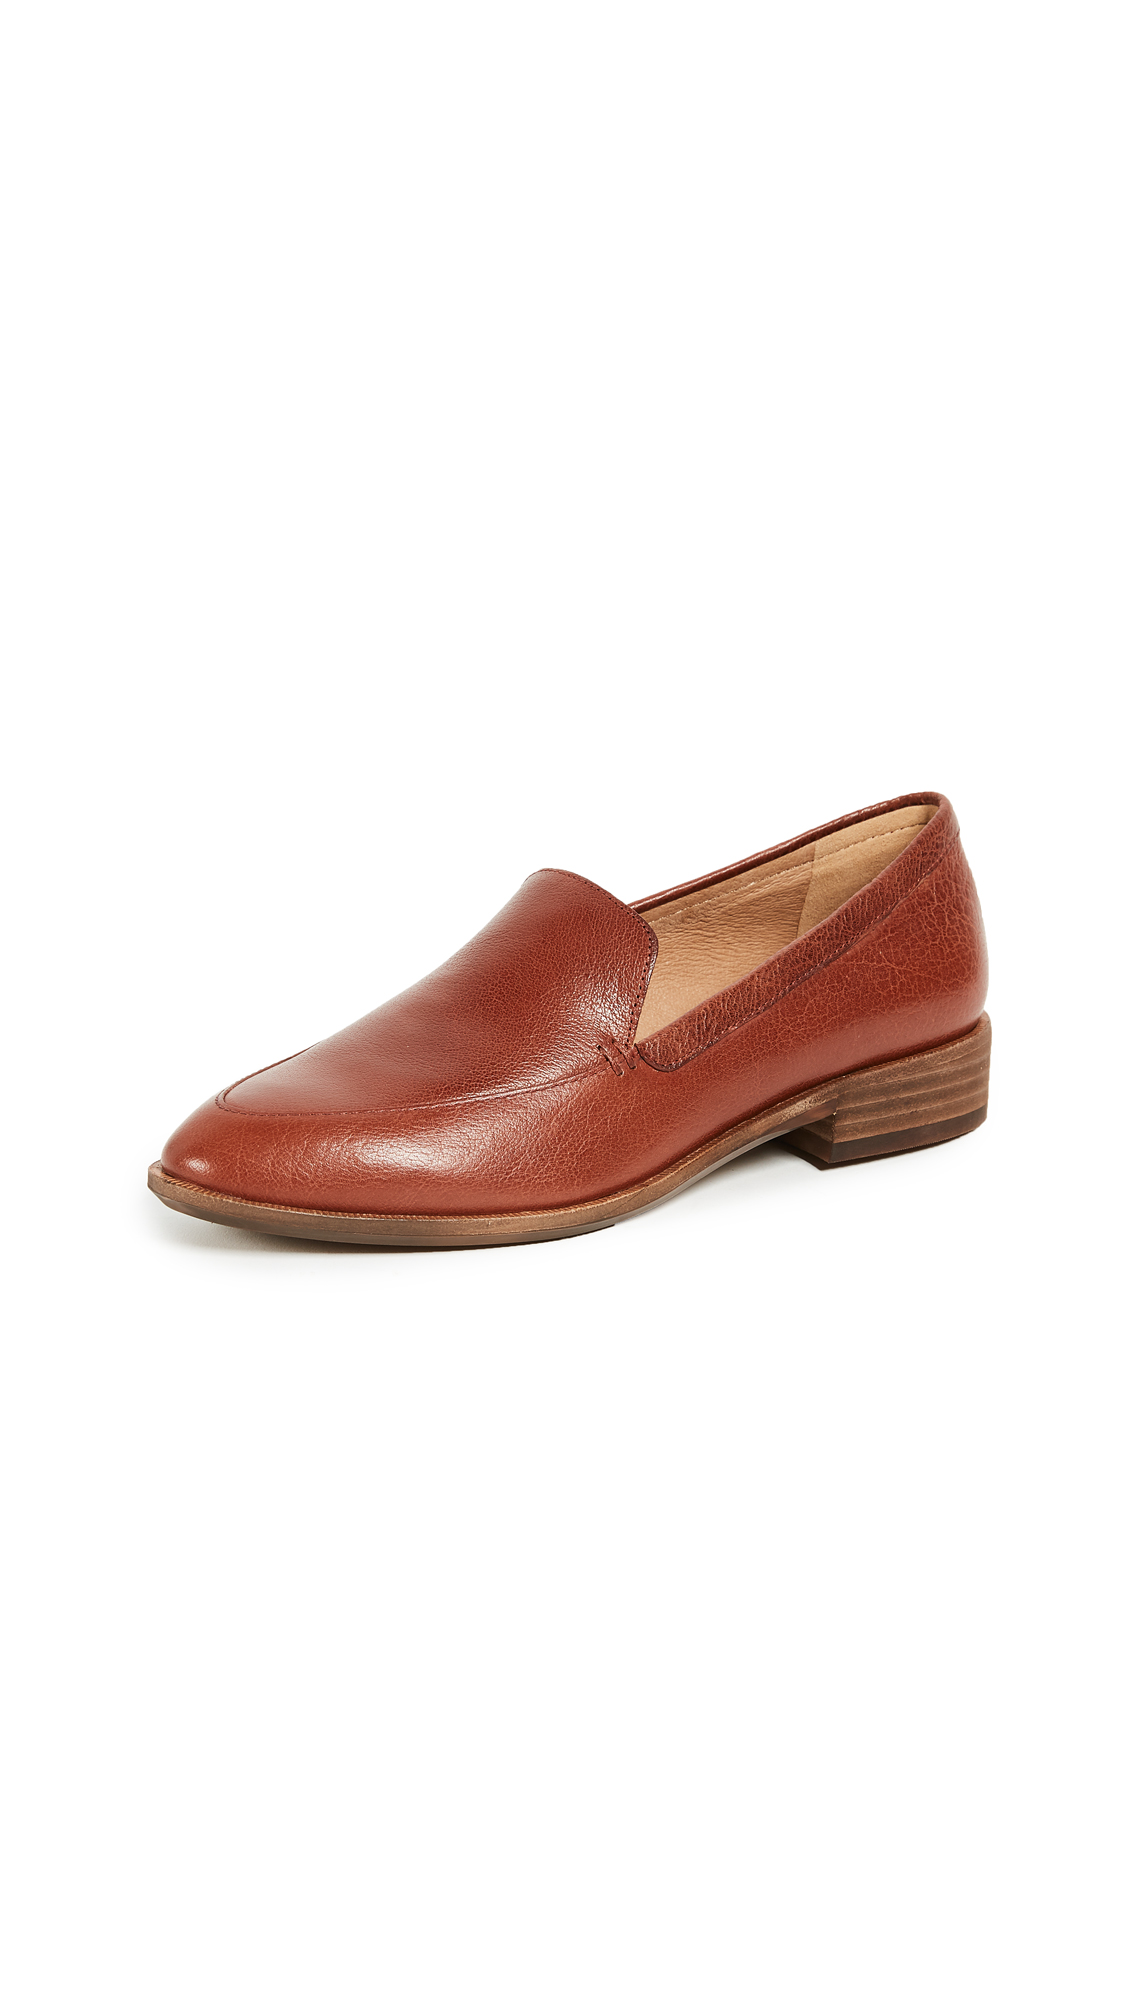 Madewell Perin Loafers - Canterbury Red